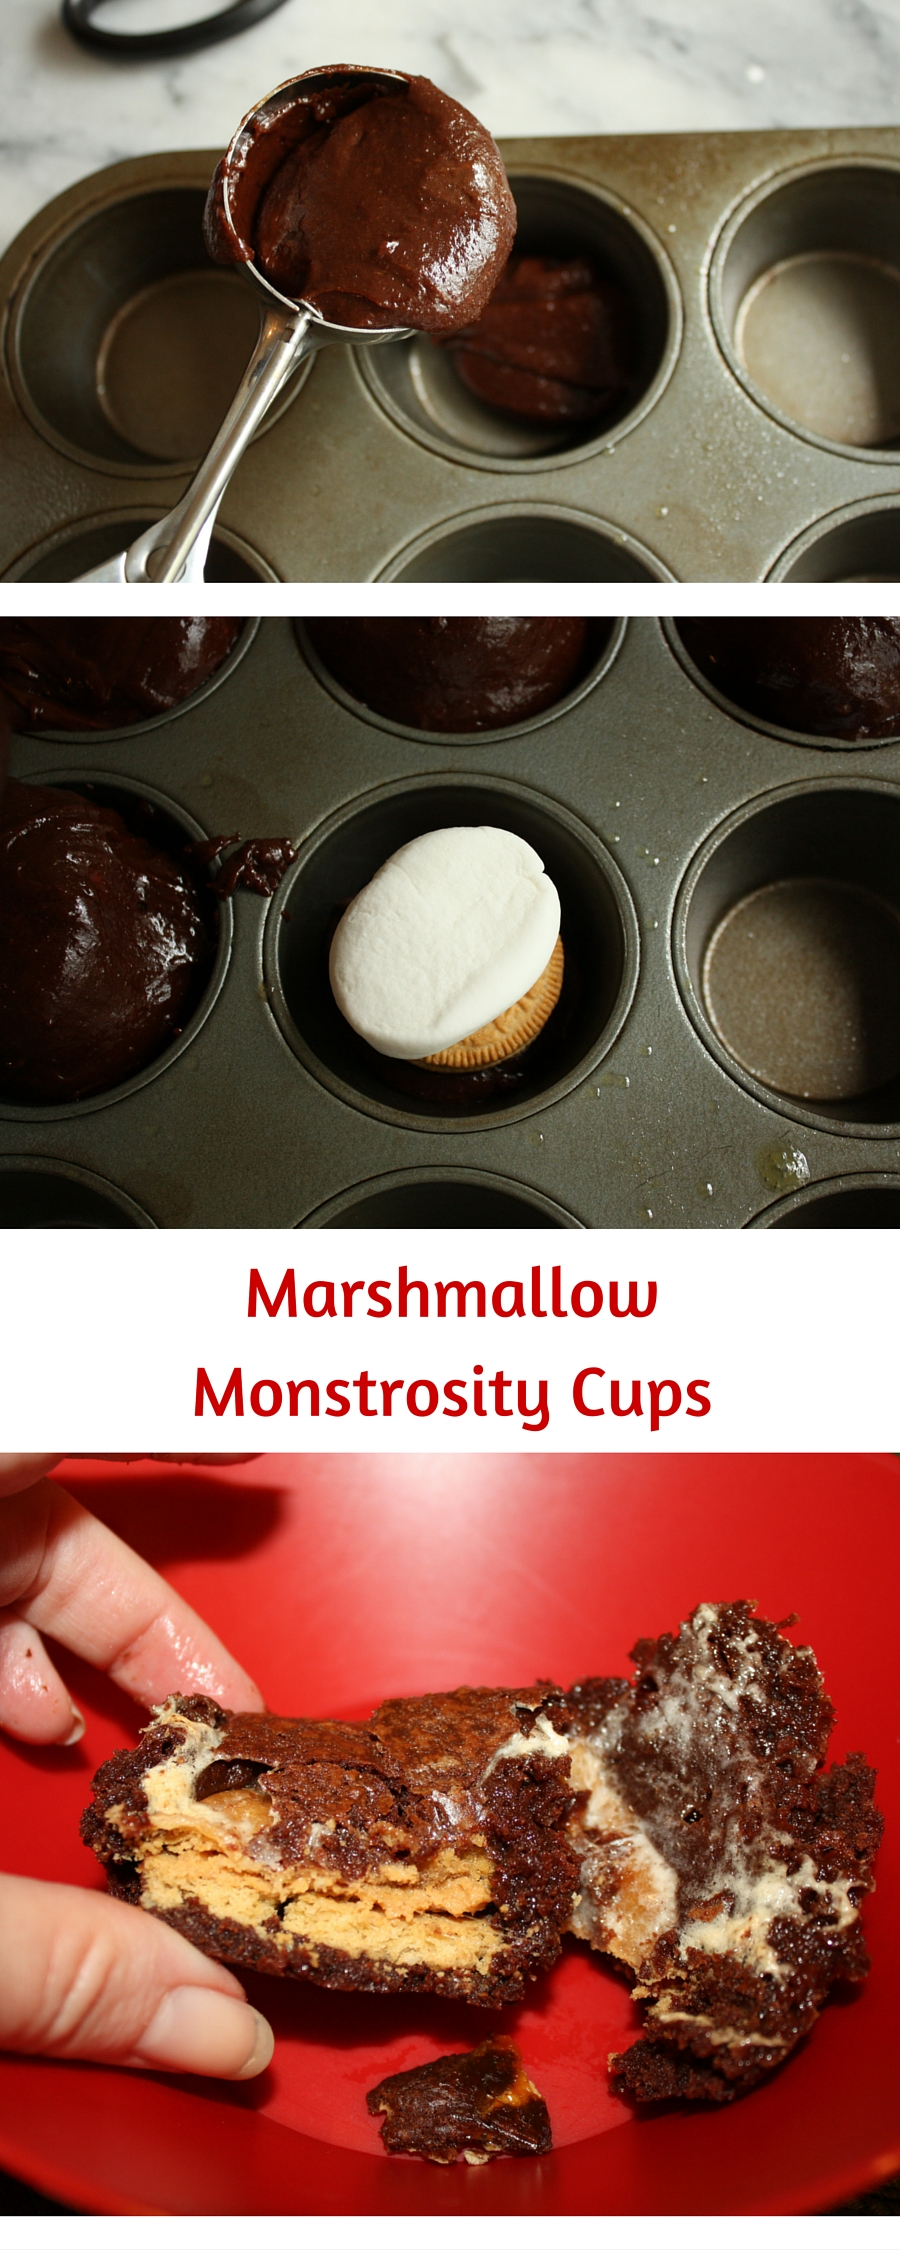 Marshmallow Monstrosity Cups are OVER THE TOP!! Filled with peanut butter cookies and jumbo marshmallows. The perfect recipe for a chocolate treat!